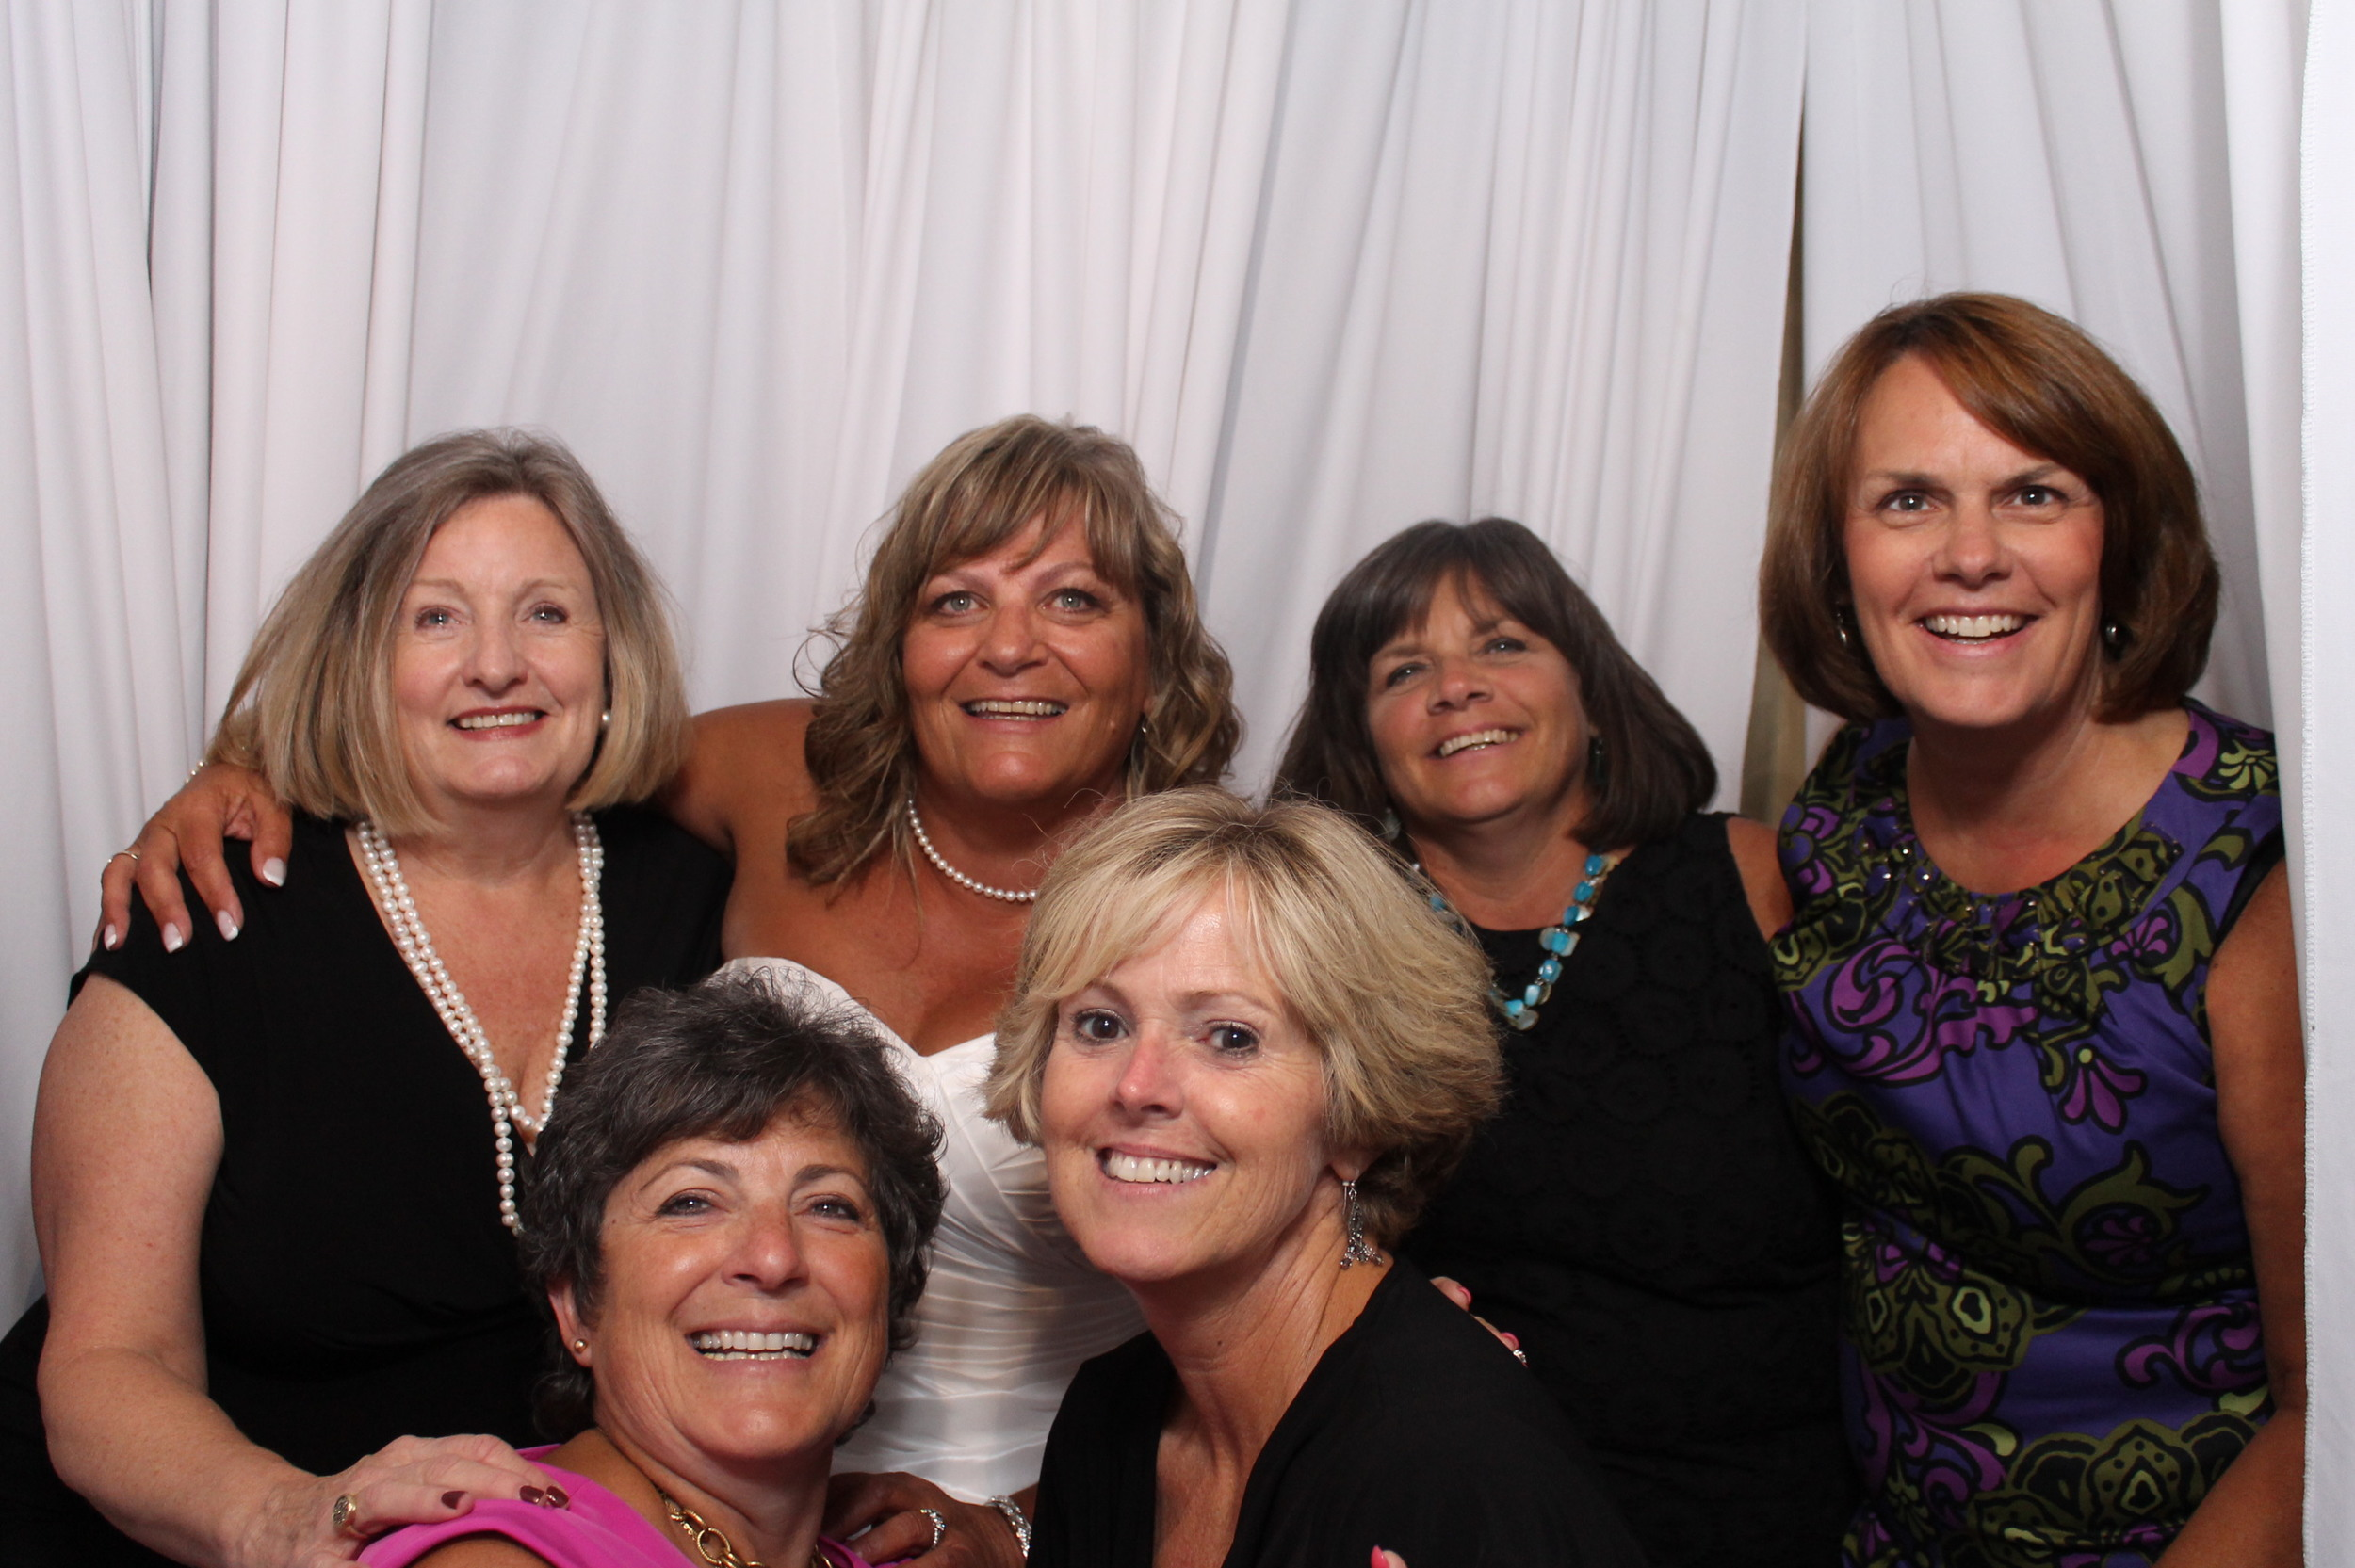 Snapshot Photobooths at the Double Tree in Tinton Falls, New Jersey